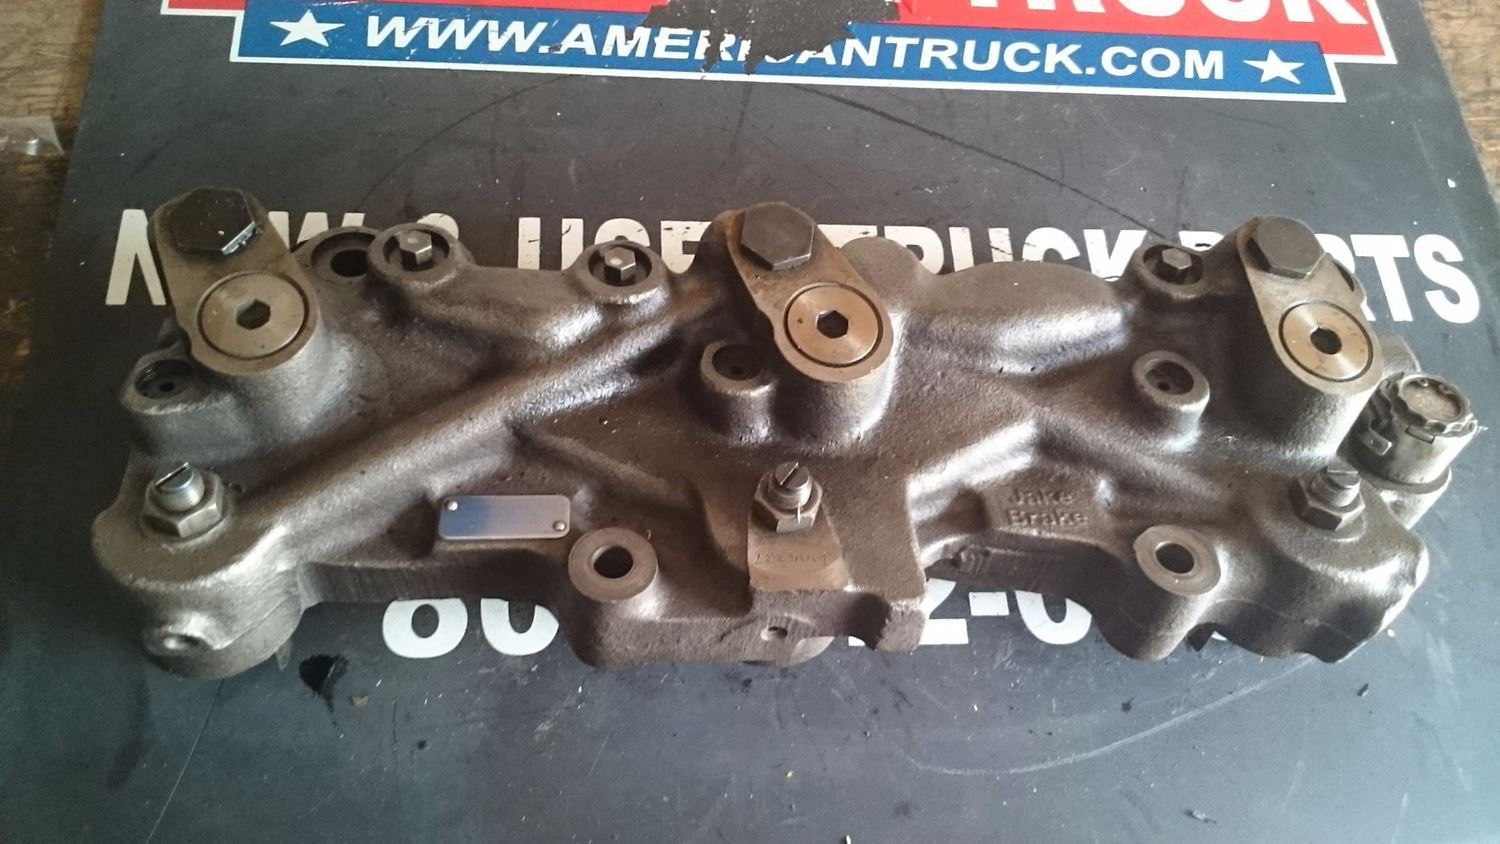 Engine Brakes New And Used Parts American Truck Chrome 3406b Diagram 4714 Inspected Good Jake Brake